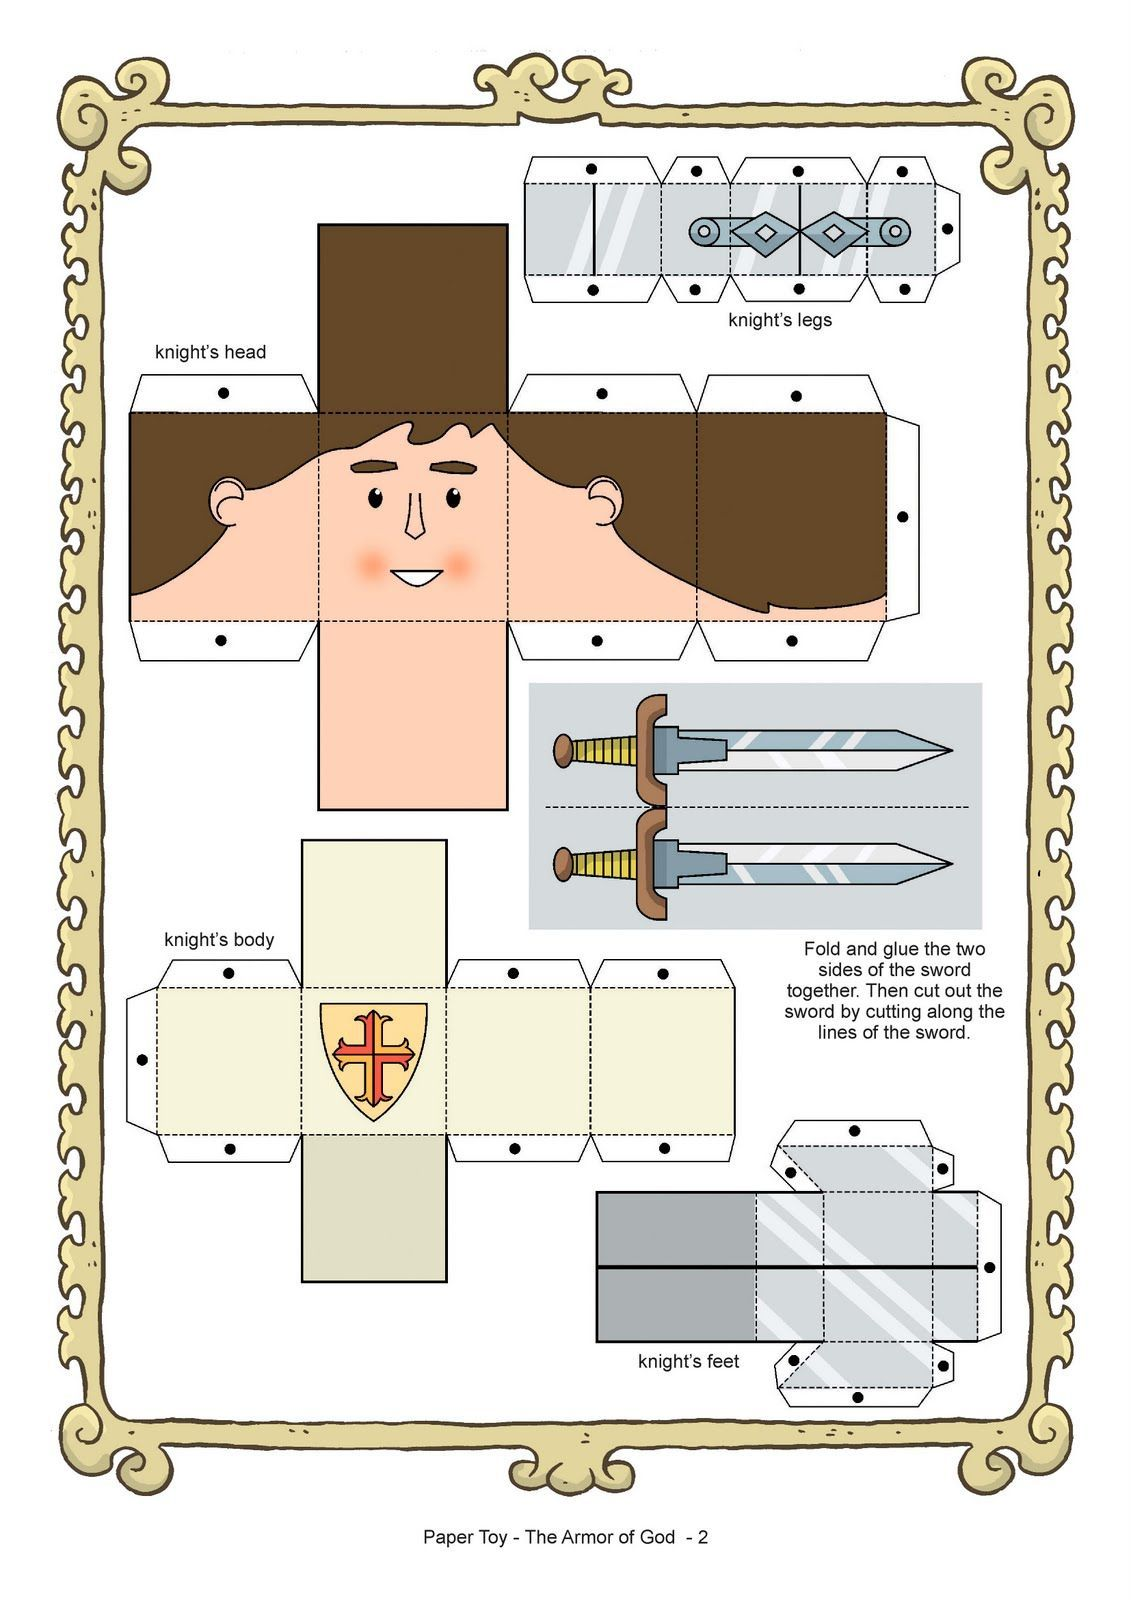 armor of god coloring pages My Little House Paper Toy